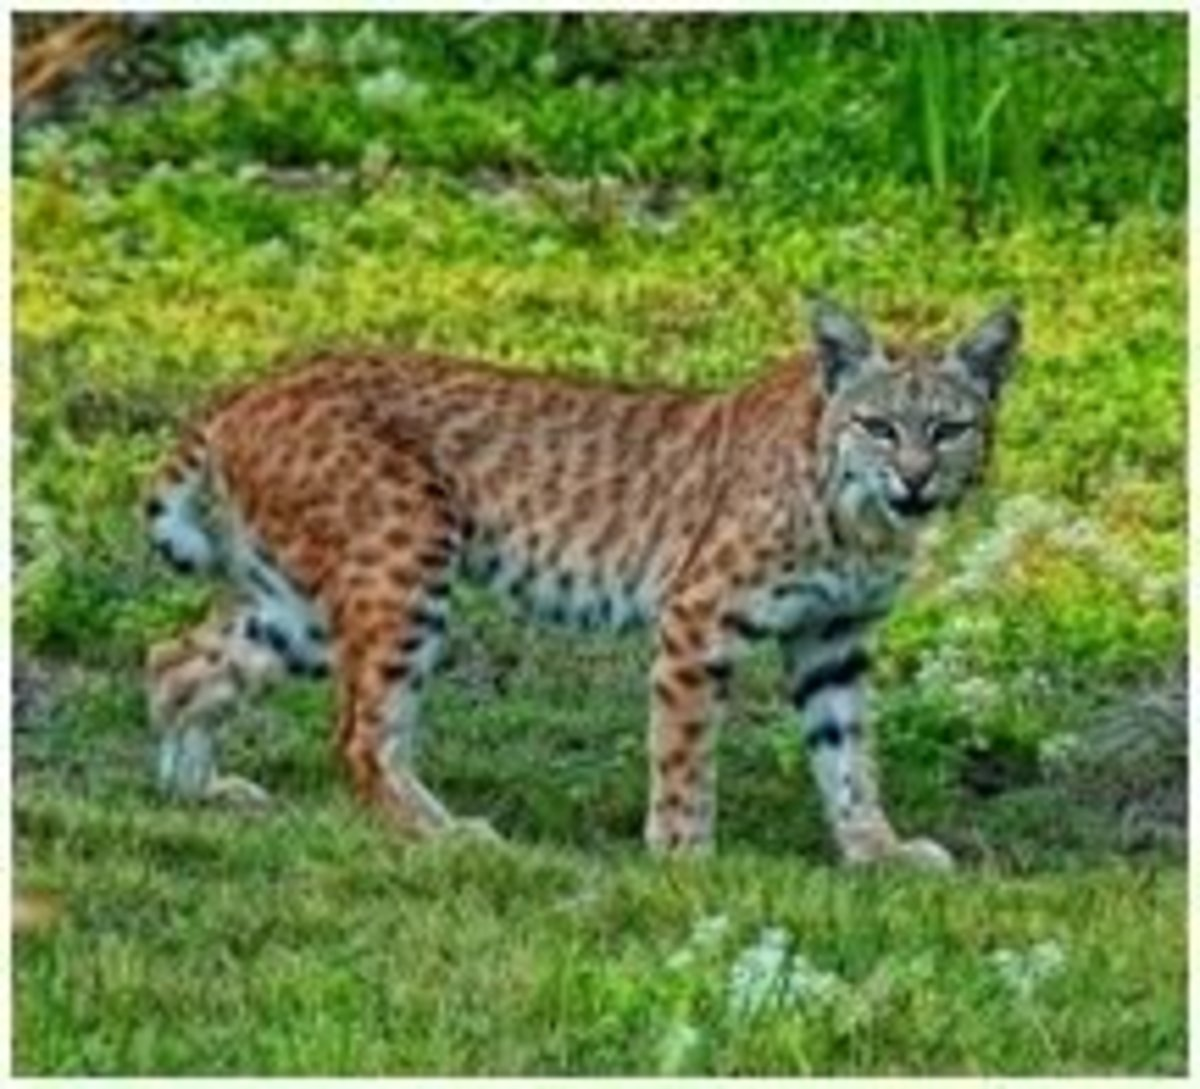 The Lynx or Bobcat